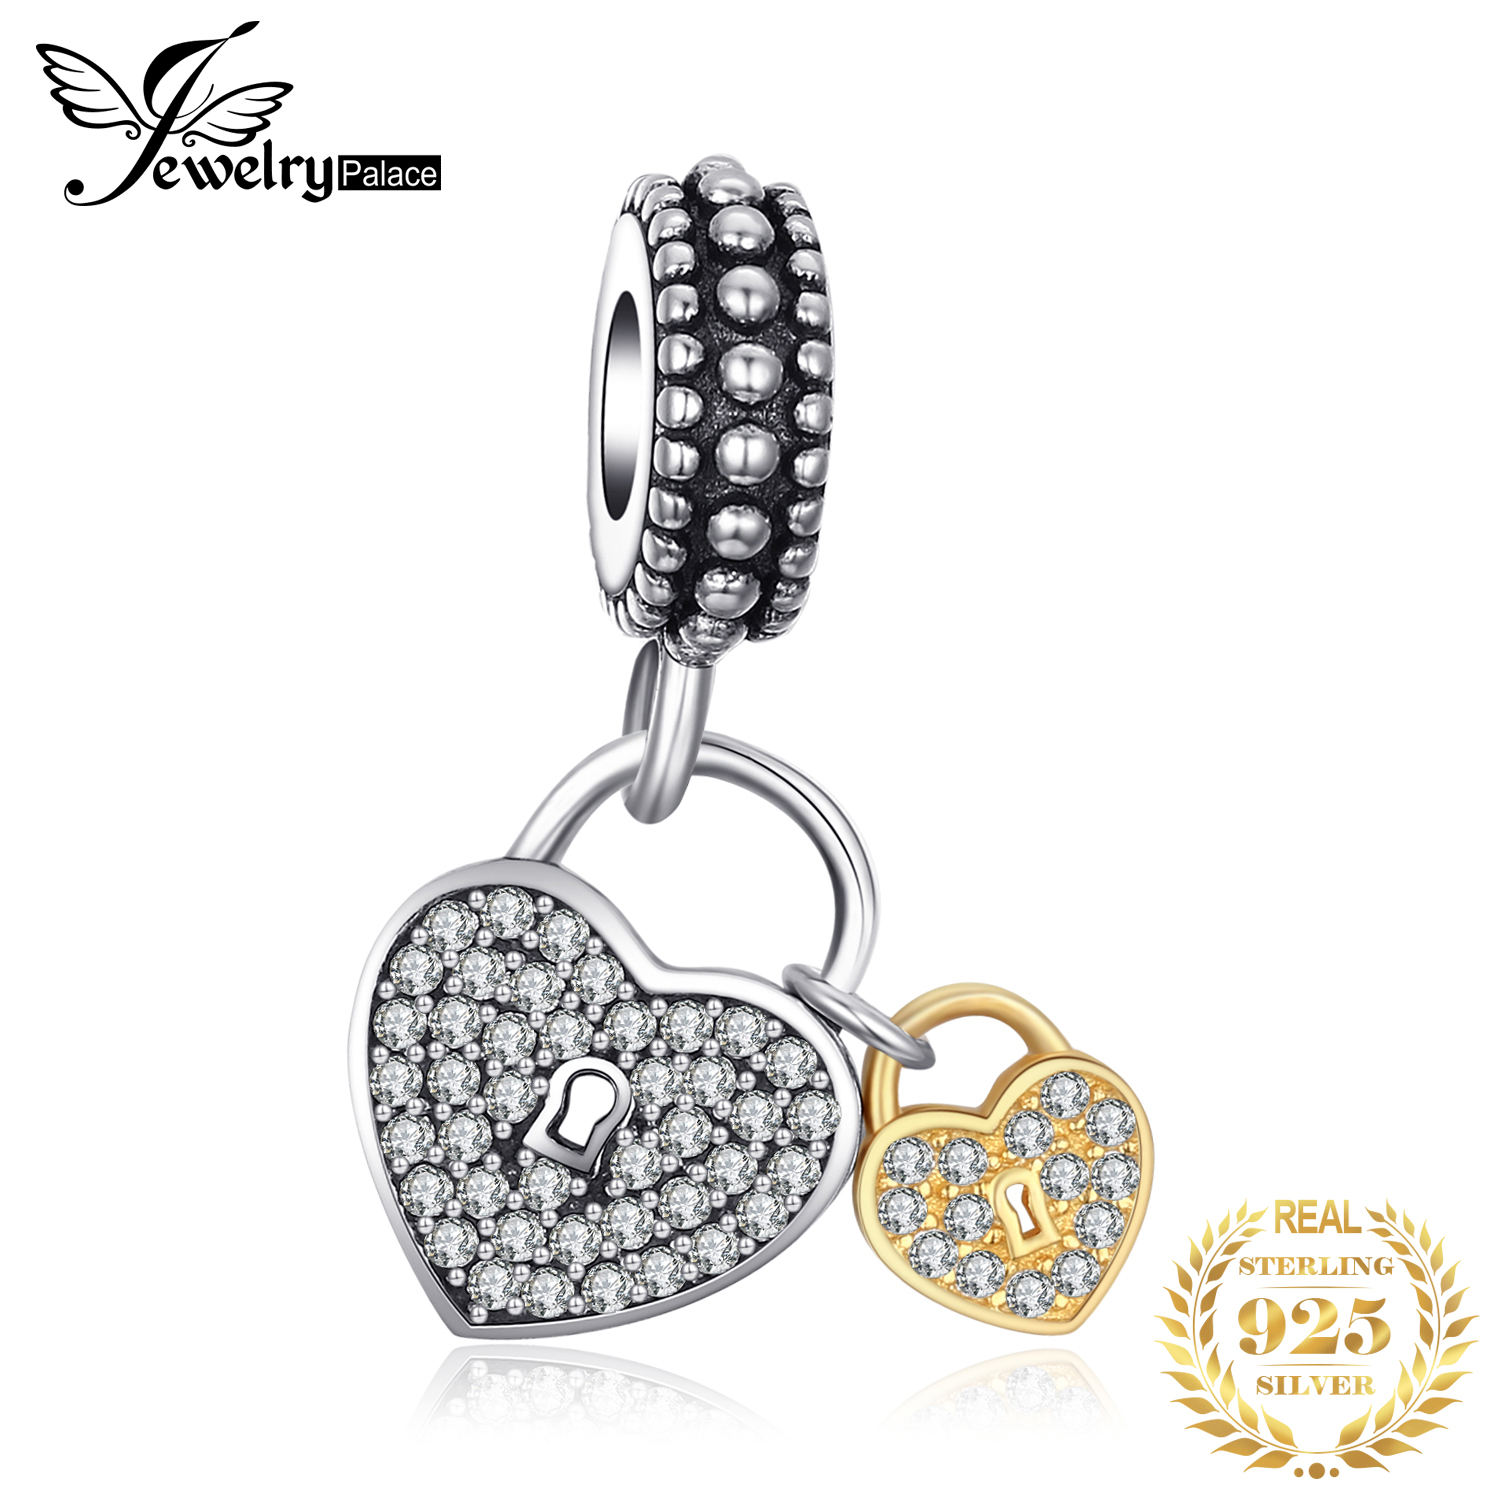 Jewelrypalace 925 Sterling Silver Parents Love Pave Cubic Zirconia Gold Murano Glass Charm Bracelets Gifts For Her Fine Jewelry